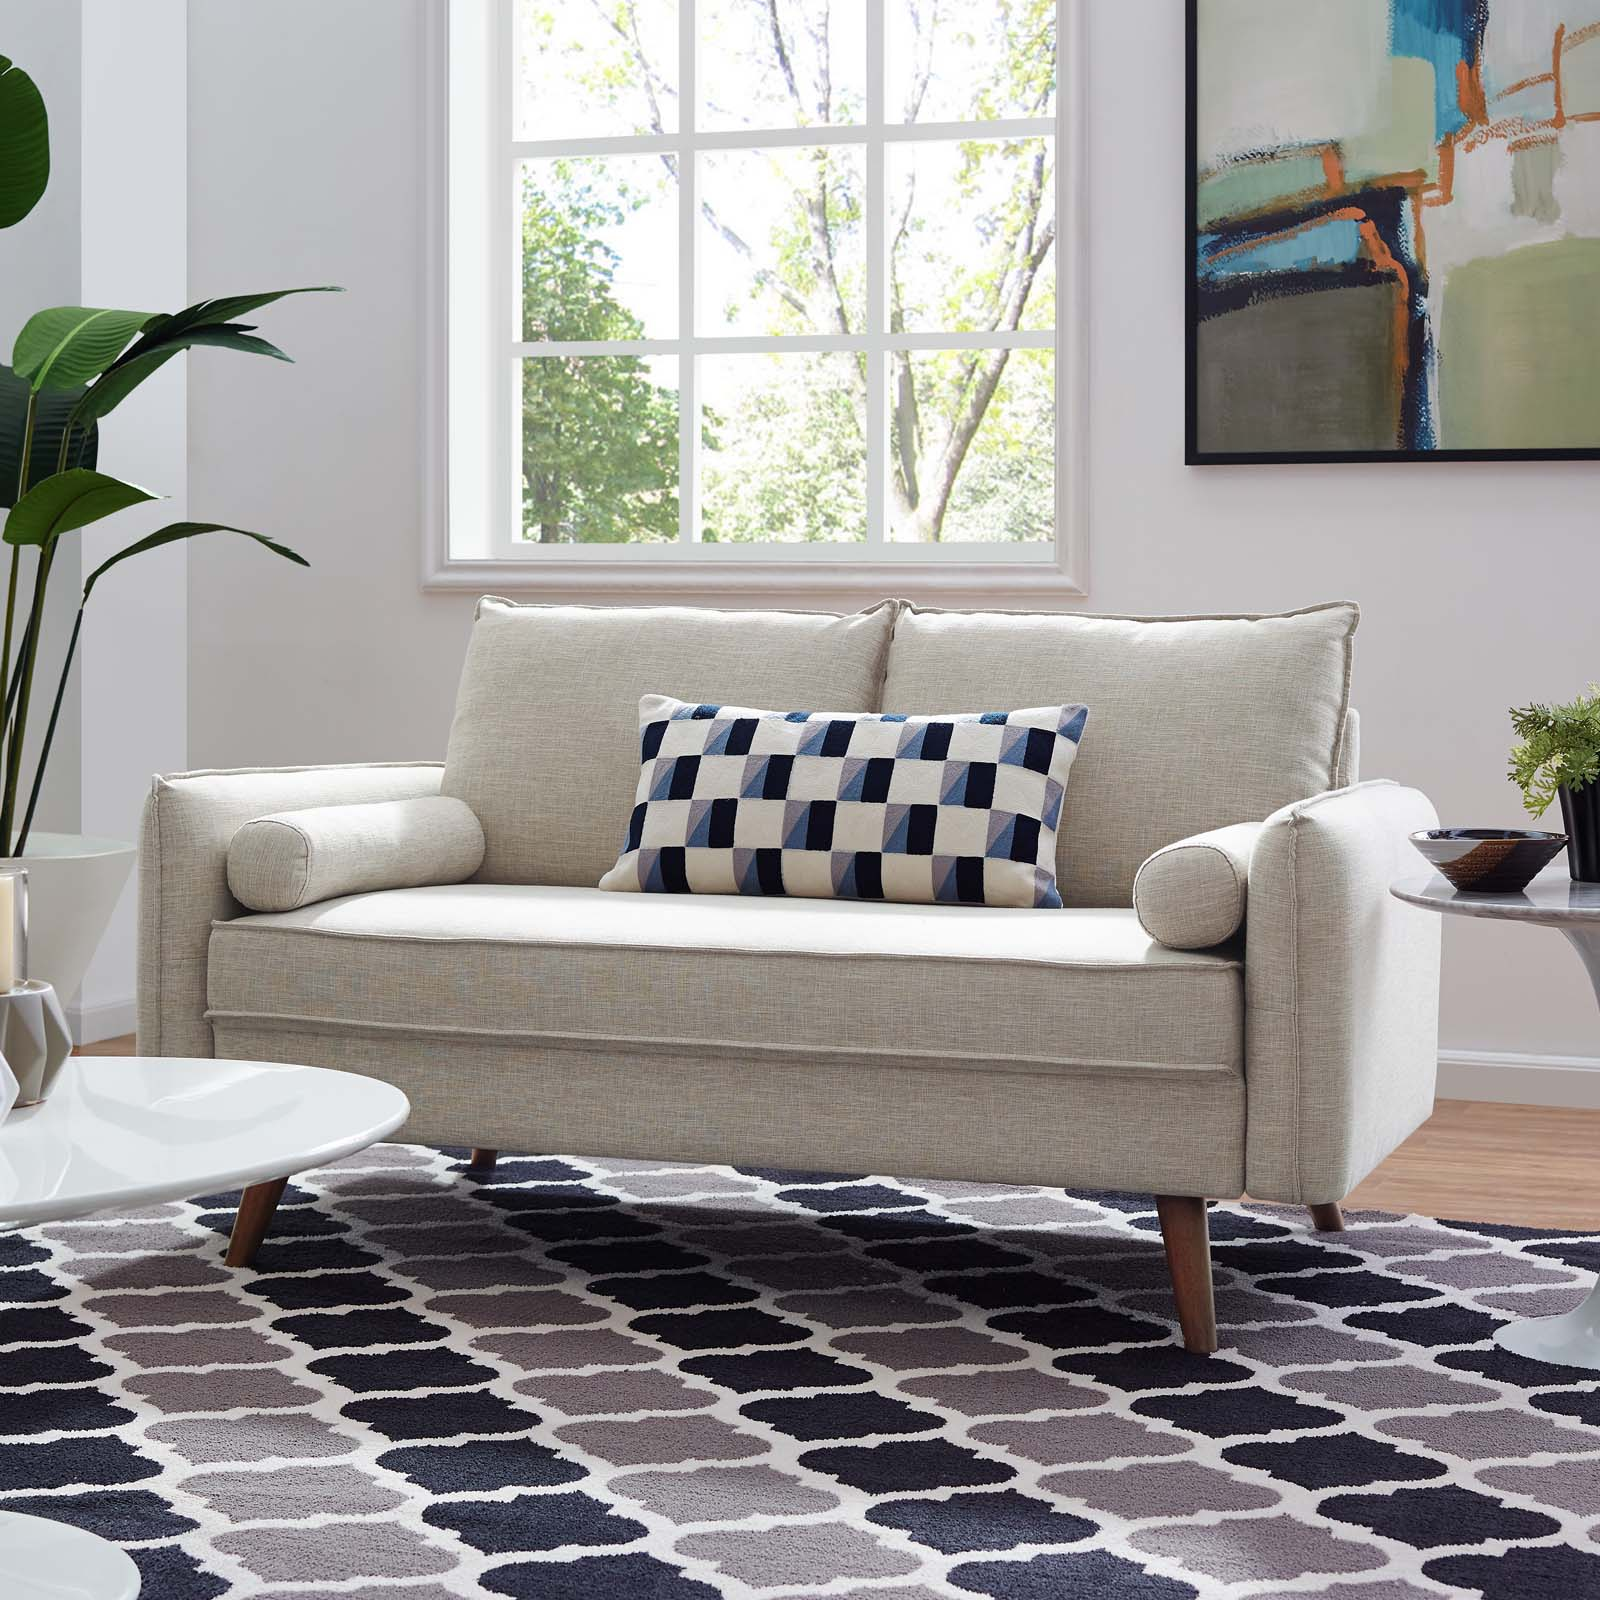 Modway Revive Fabric Upholstered Loveseat, Multiple Colors